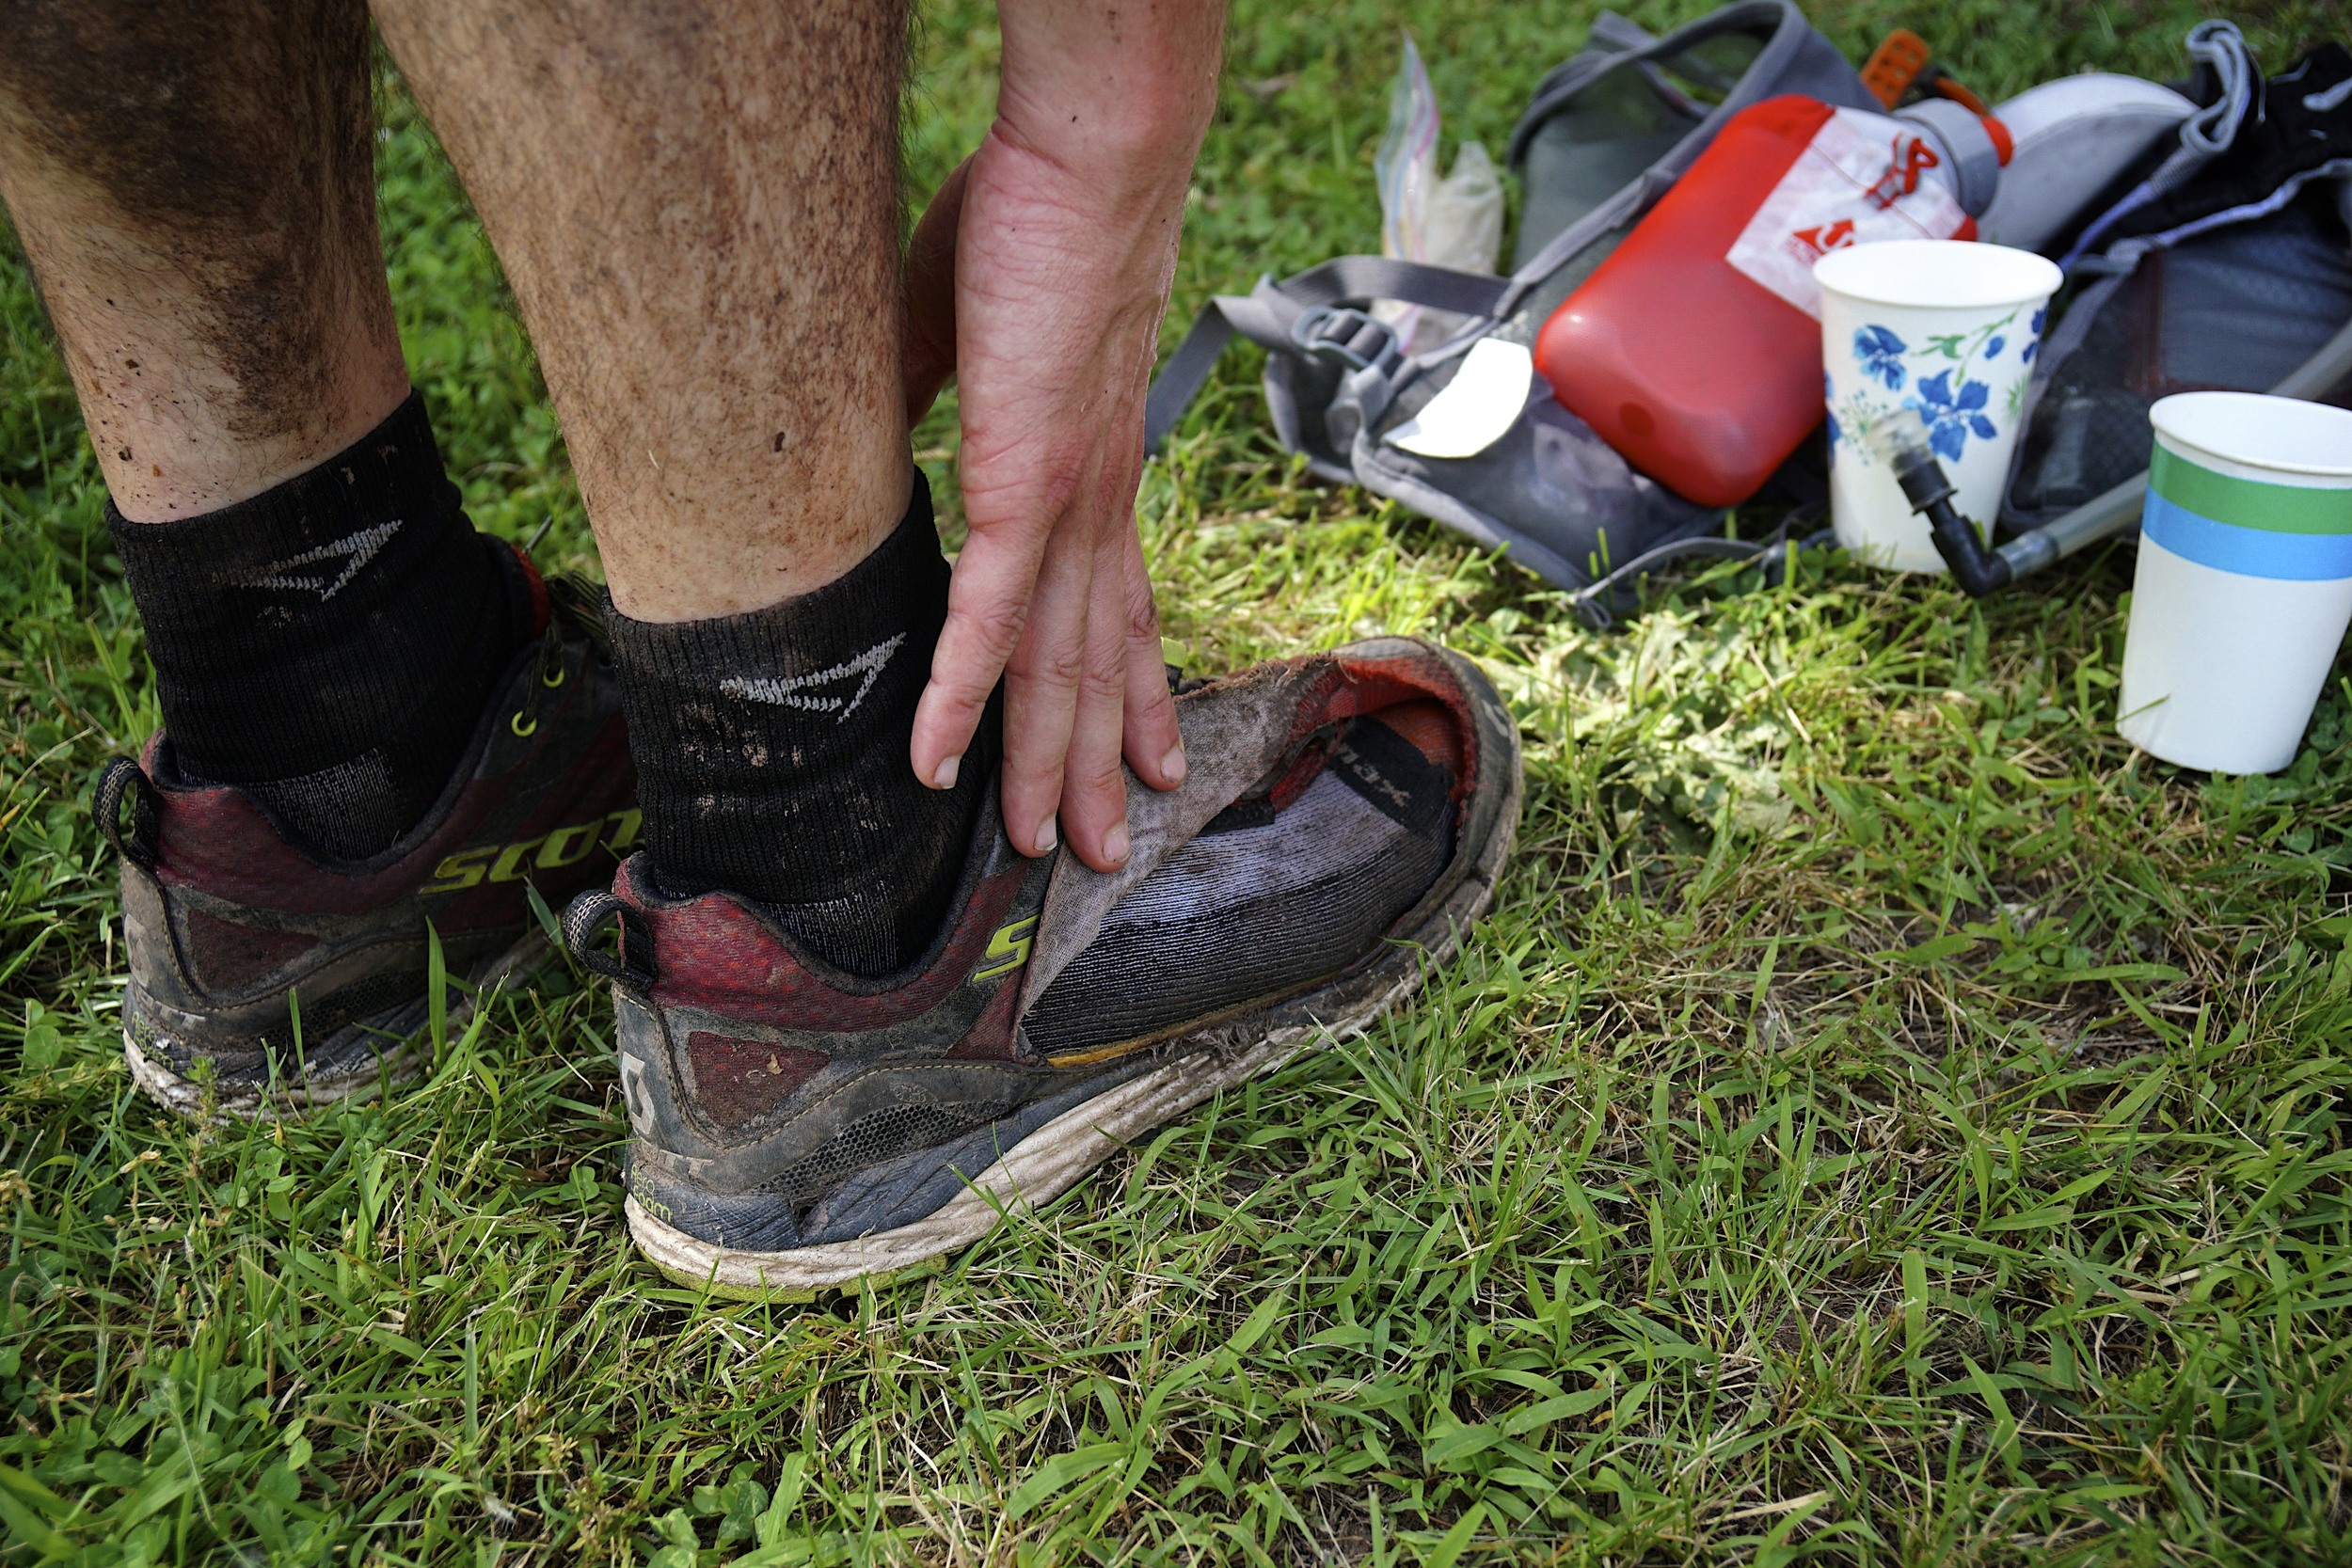 Brian's shoe at the finish